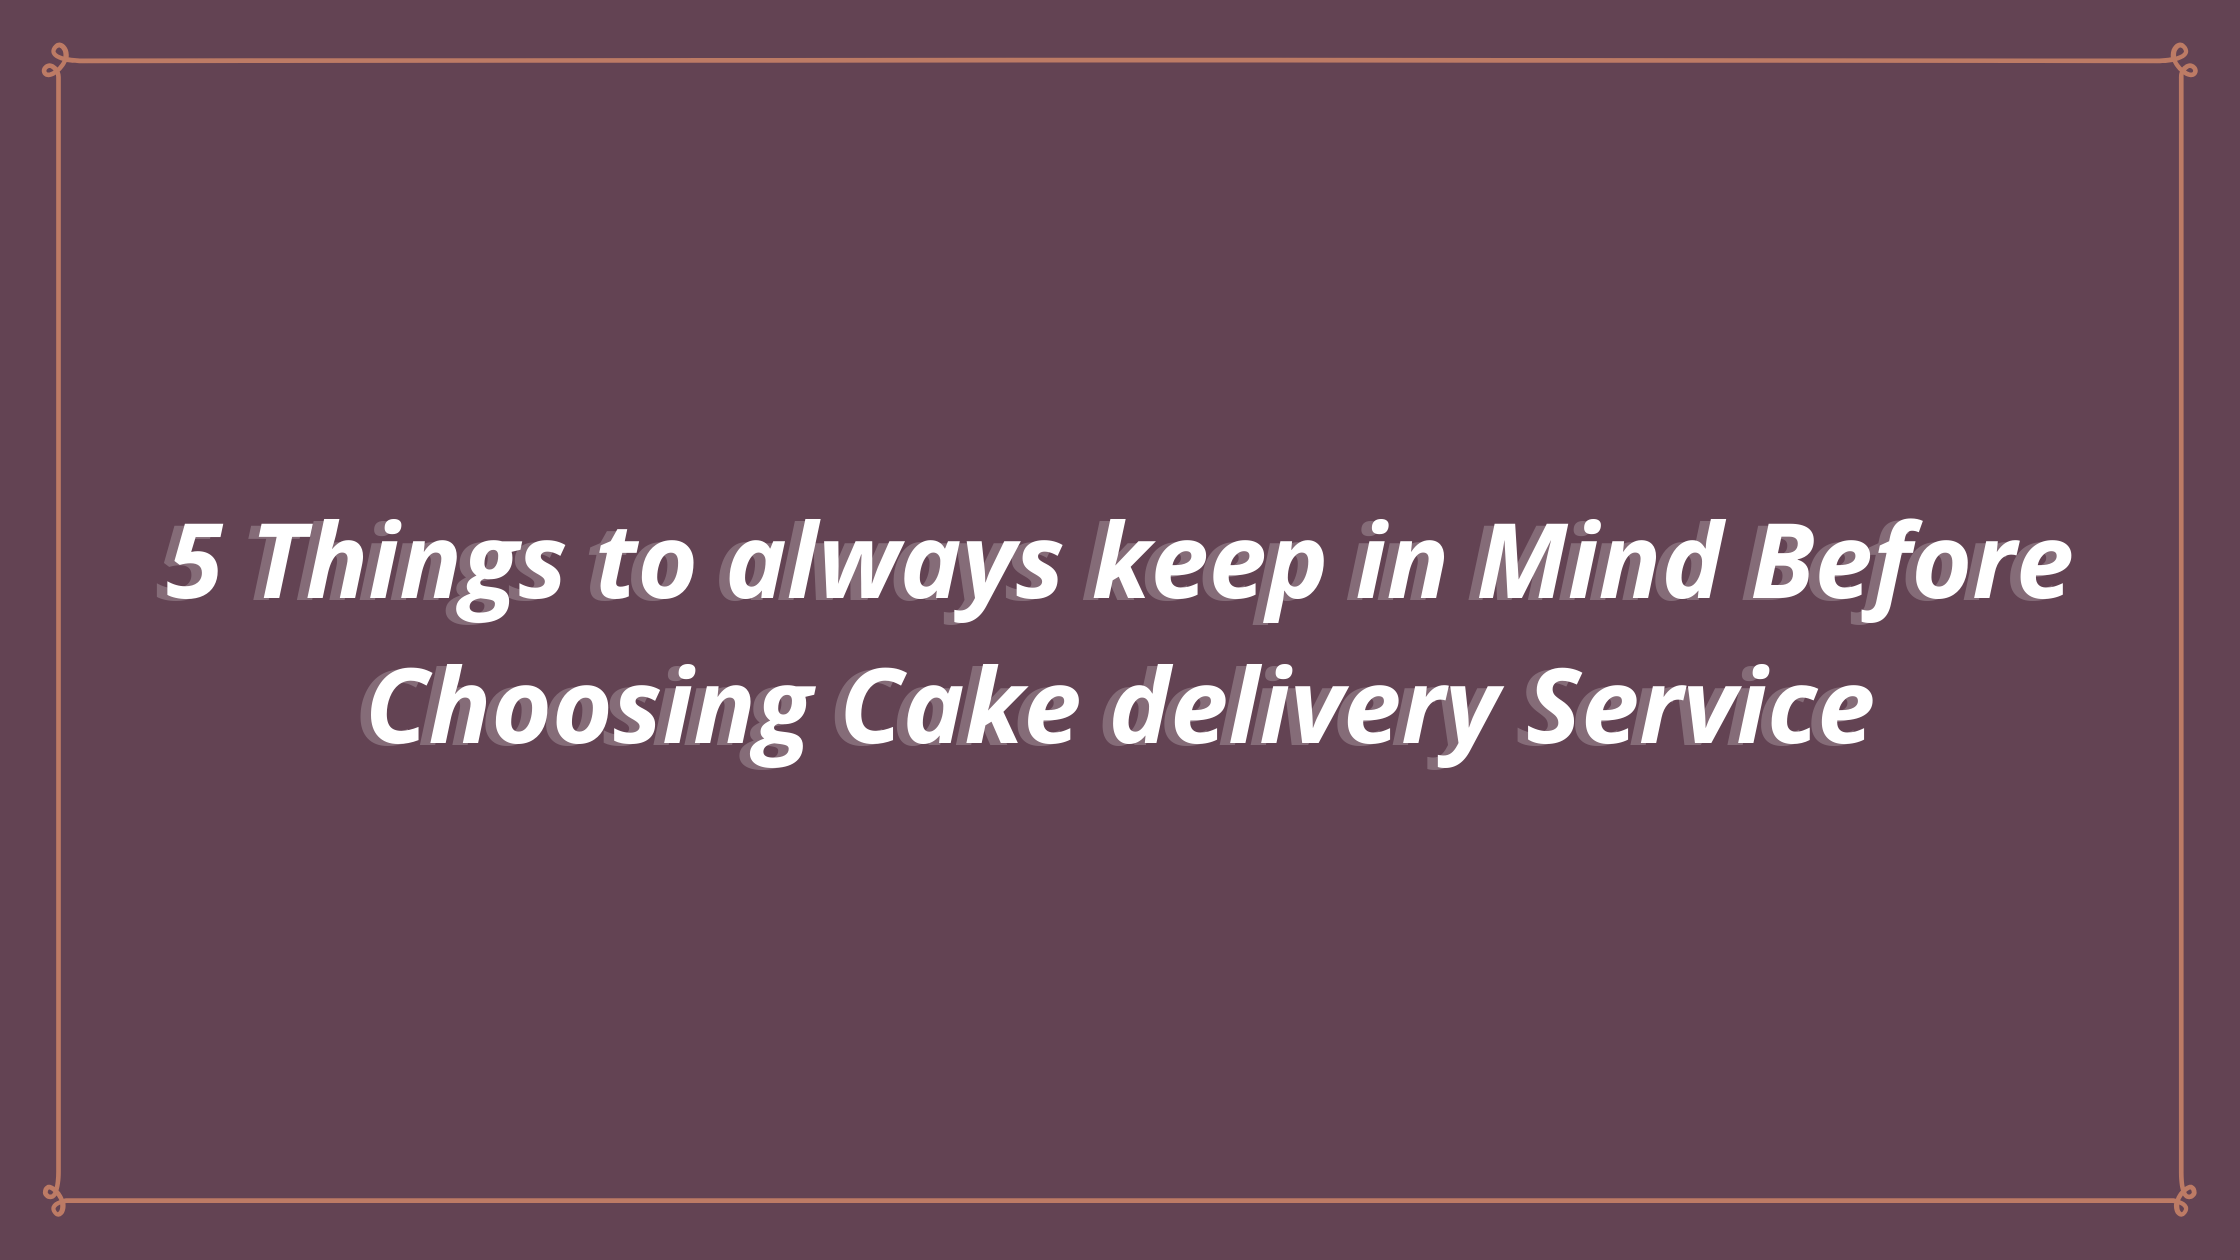 5 Things to always keep in Mind Before Choosing Cake delivery Service